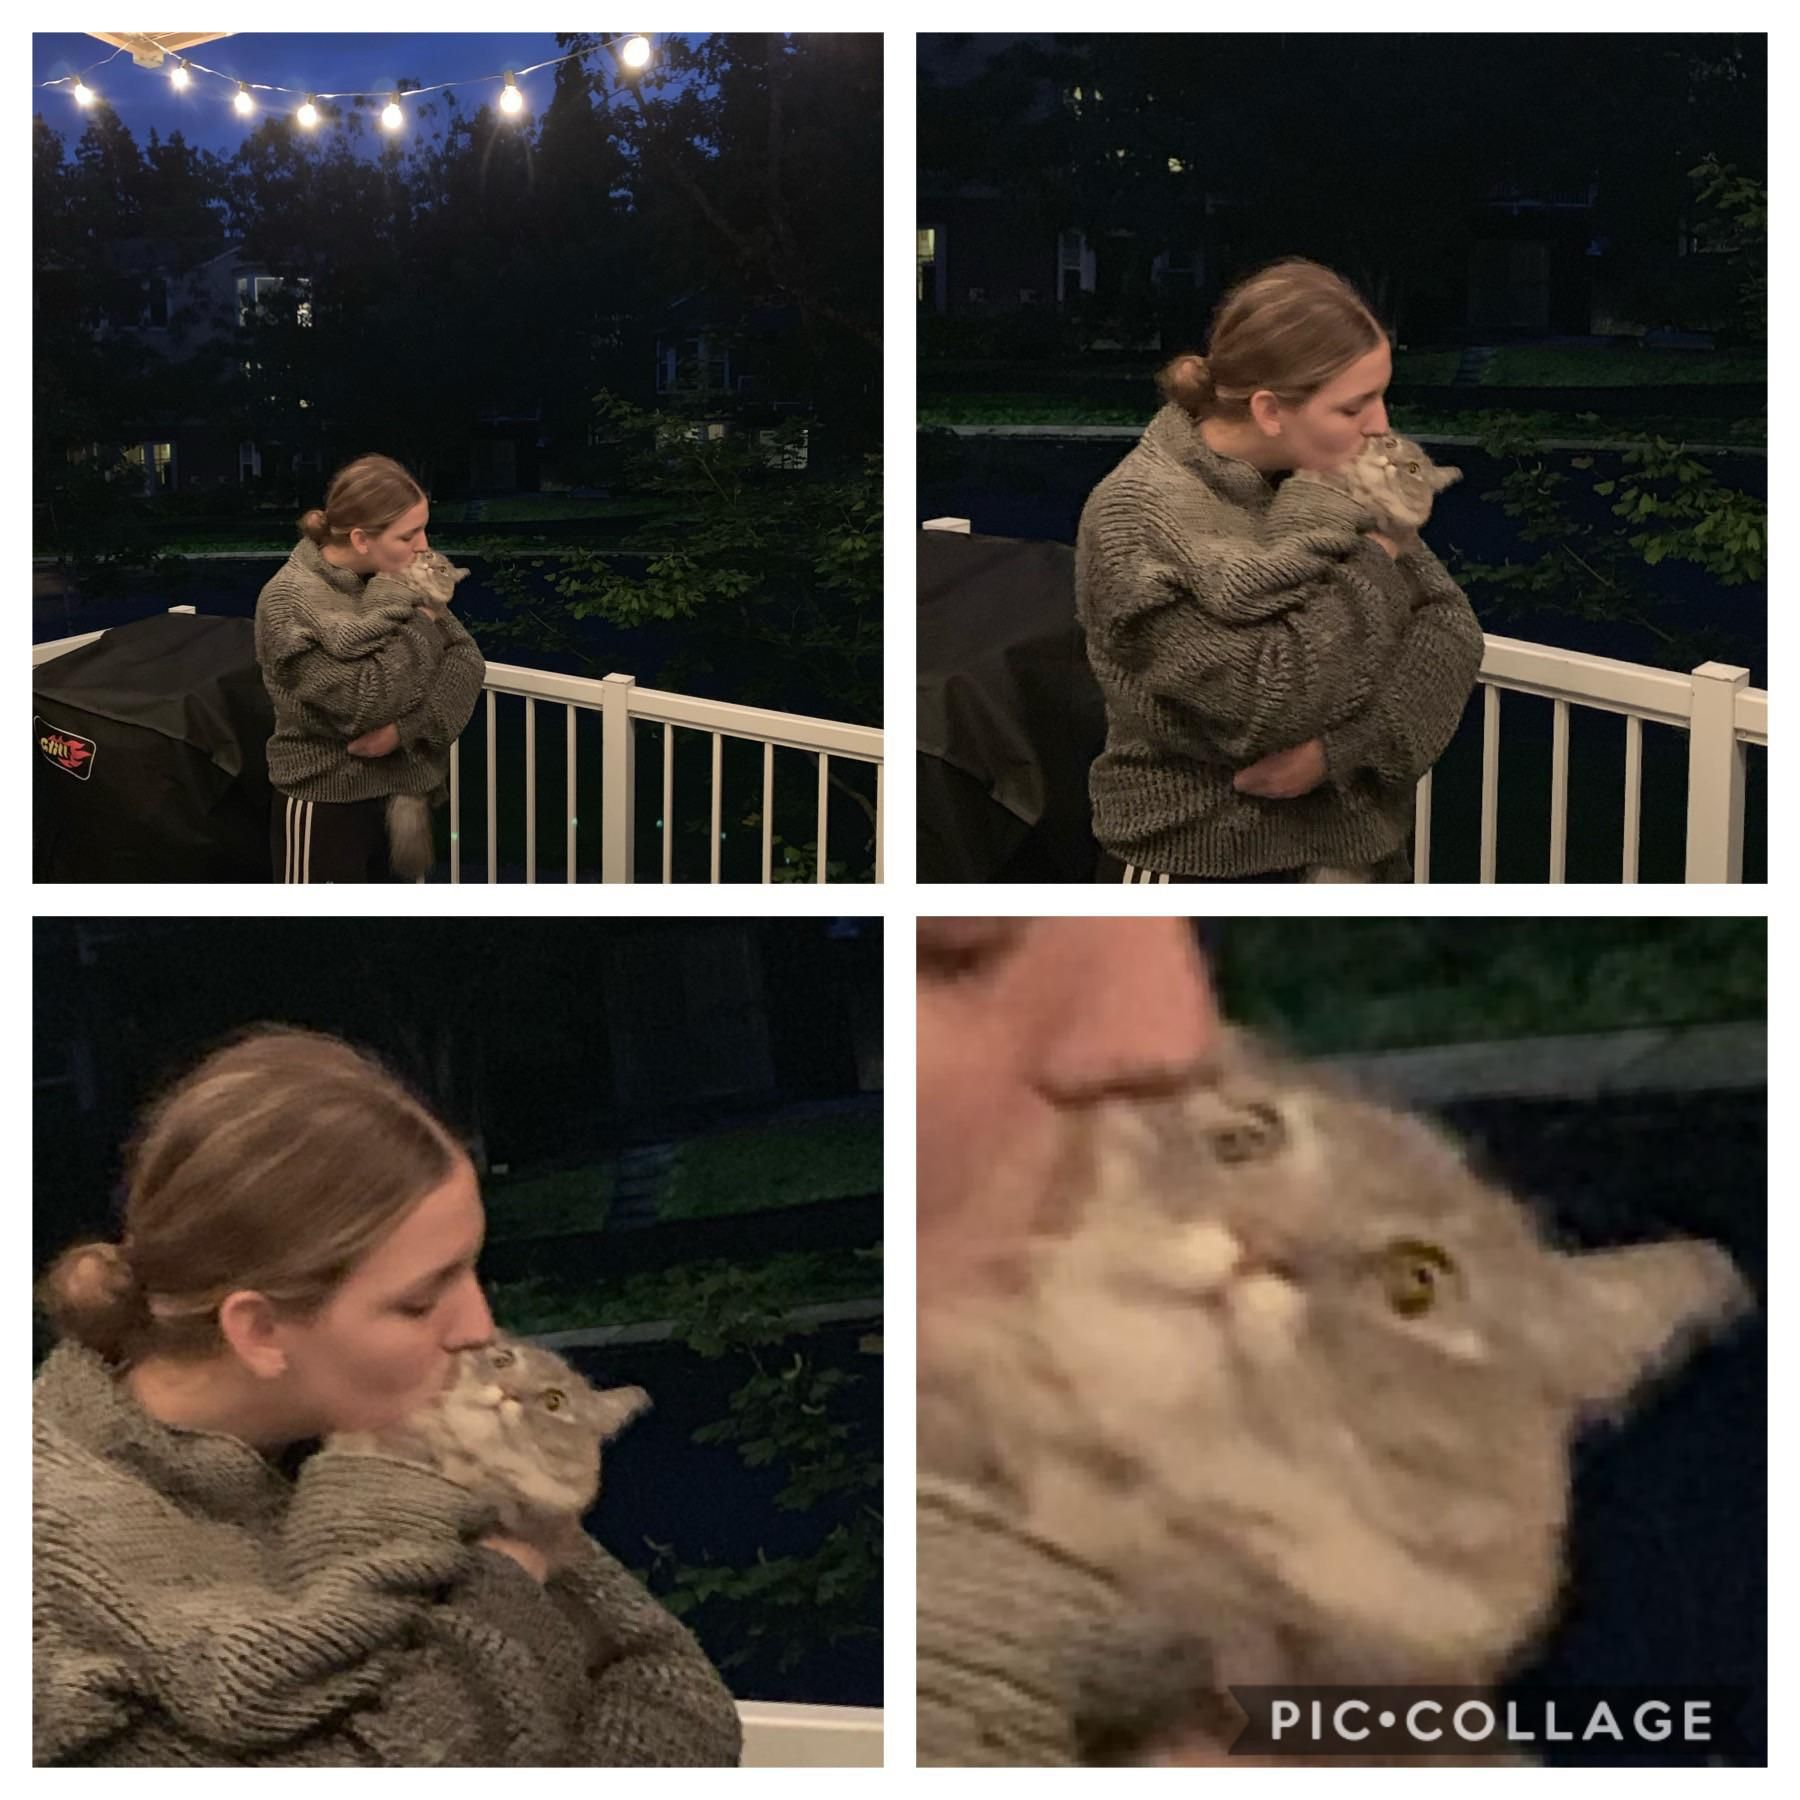 Sometimes my girlfriend loves my cat too much